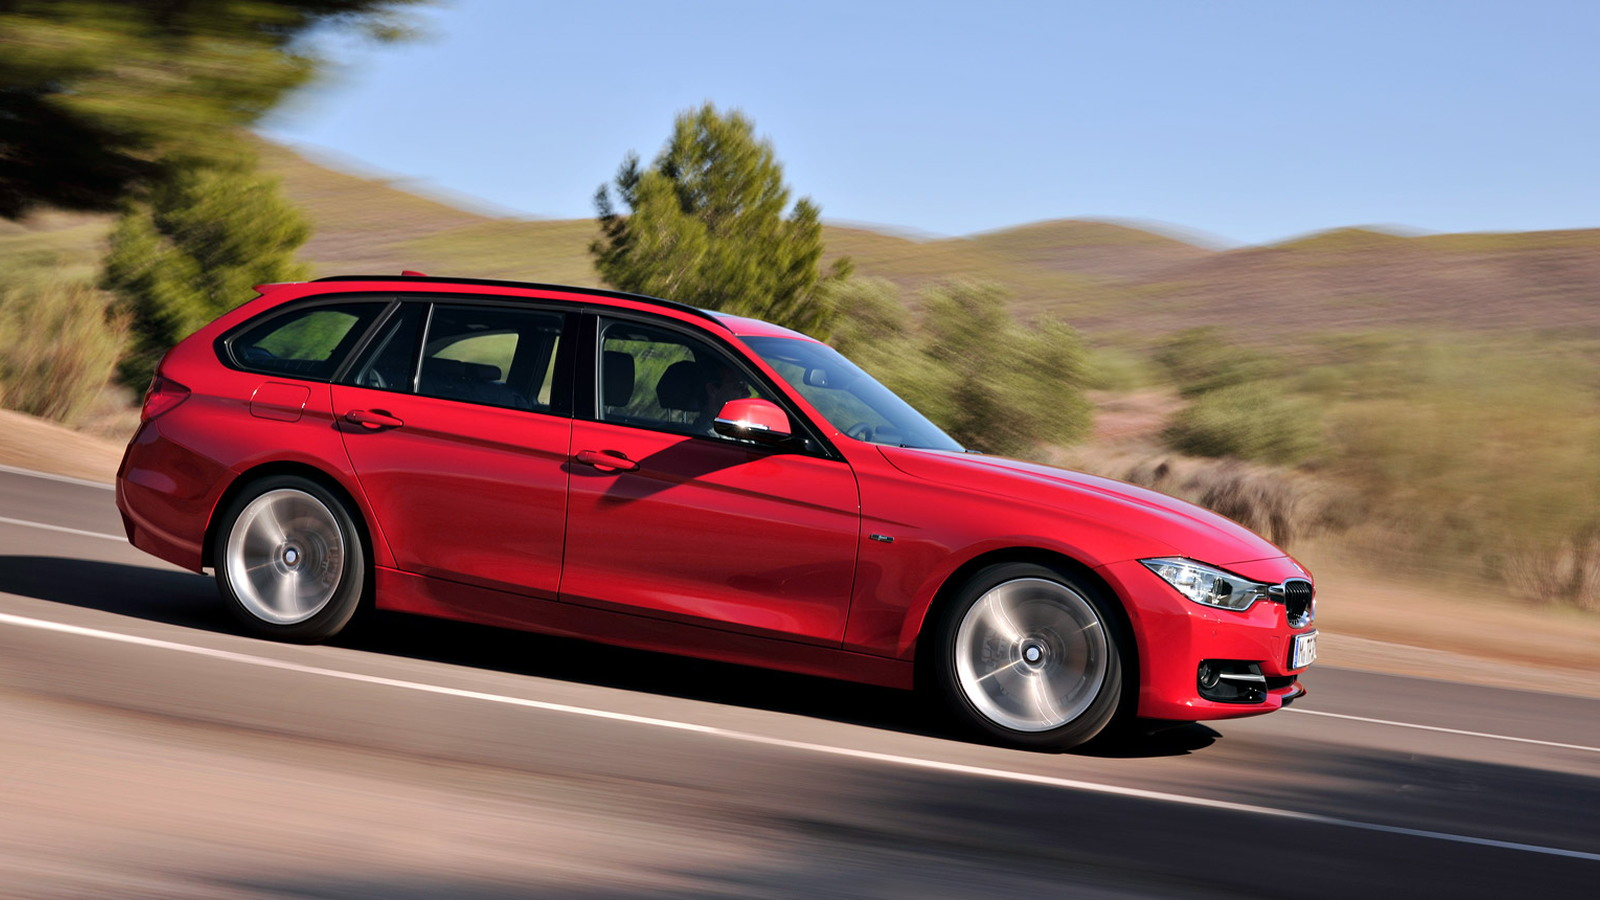 Bmw Confirms 2 0 Liter Four Cylinder Turbodiesel For U S